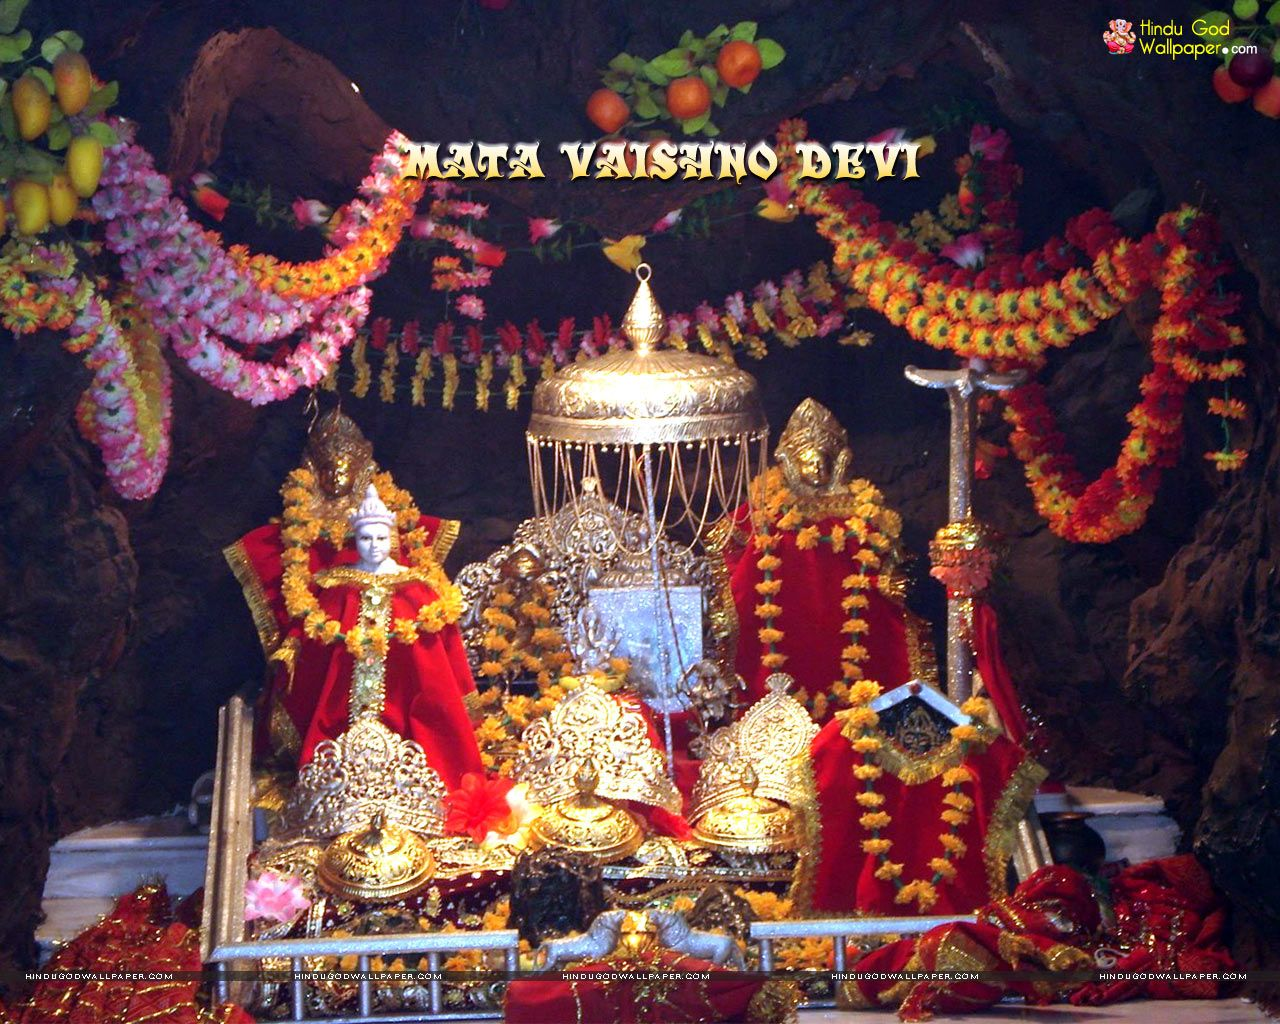 Wallpaper download mata rani - Mata Vaishno Devi Pindi Wallpaper Free Download